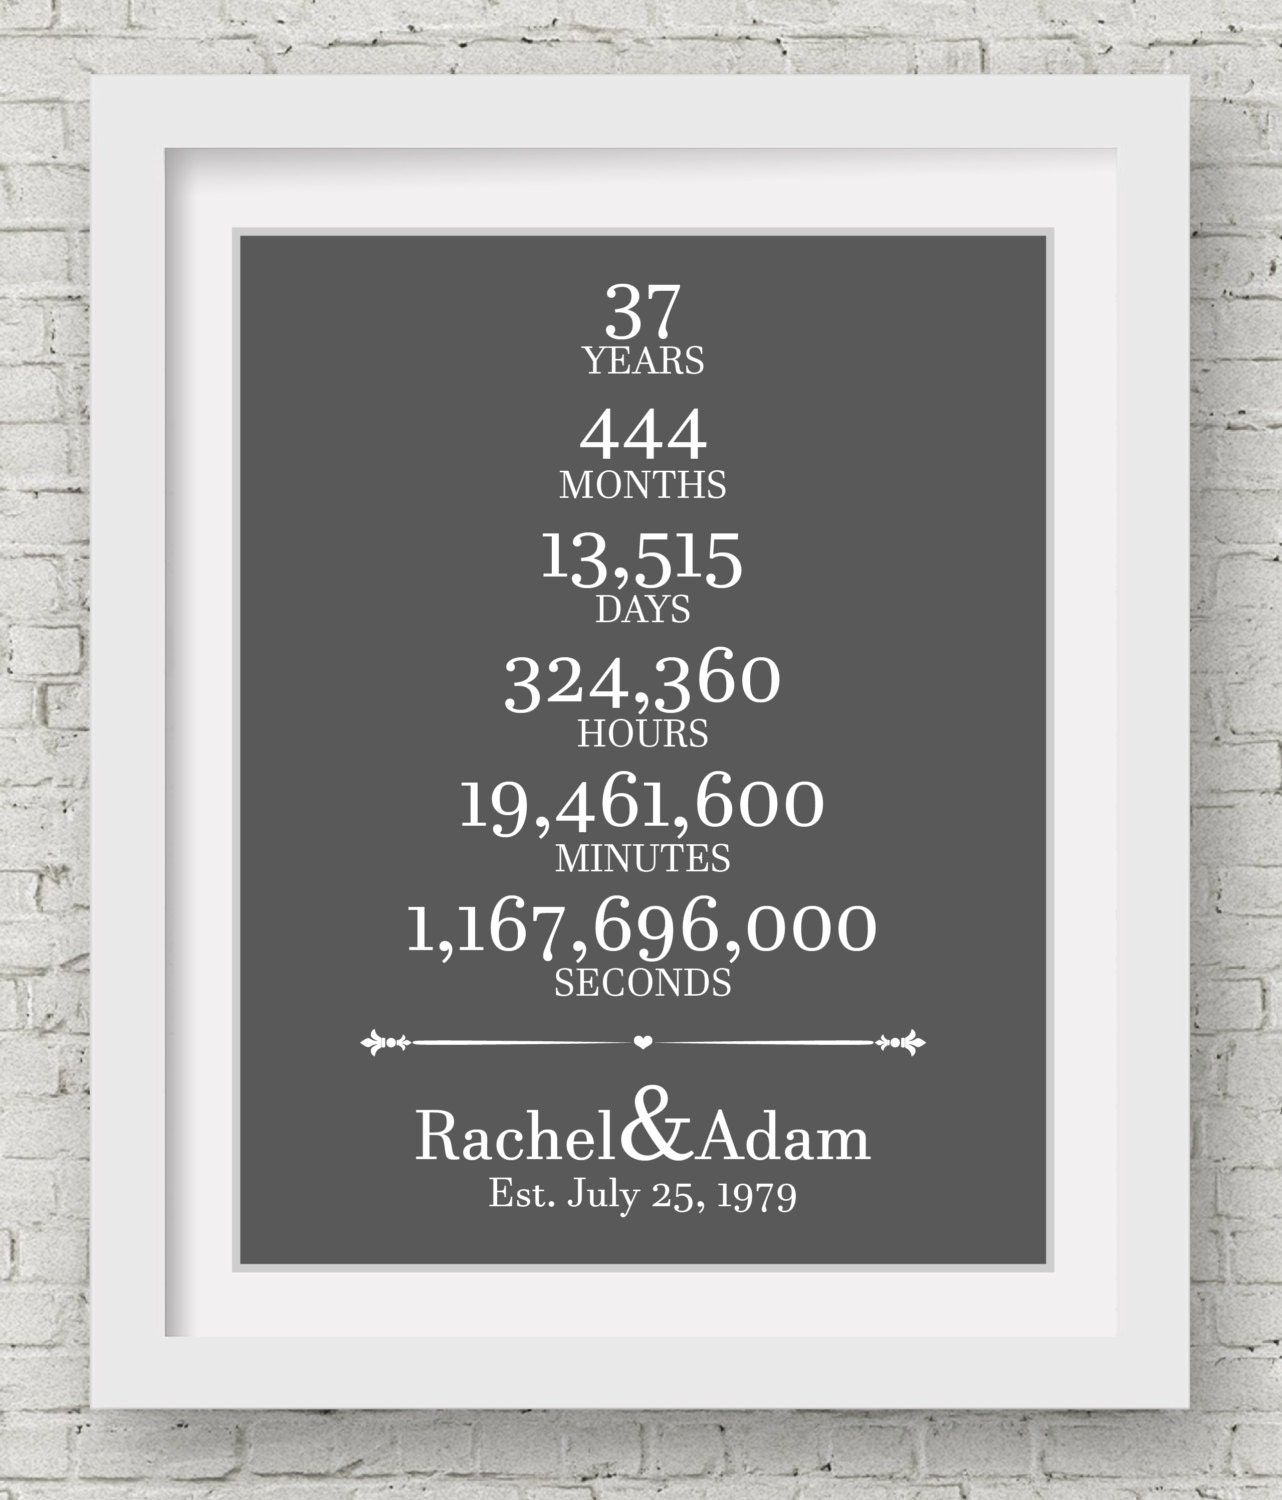 Wedding Gift For 37 Years : 37th Wedding Anniversary Gift For Parents 37 Year Anniversary